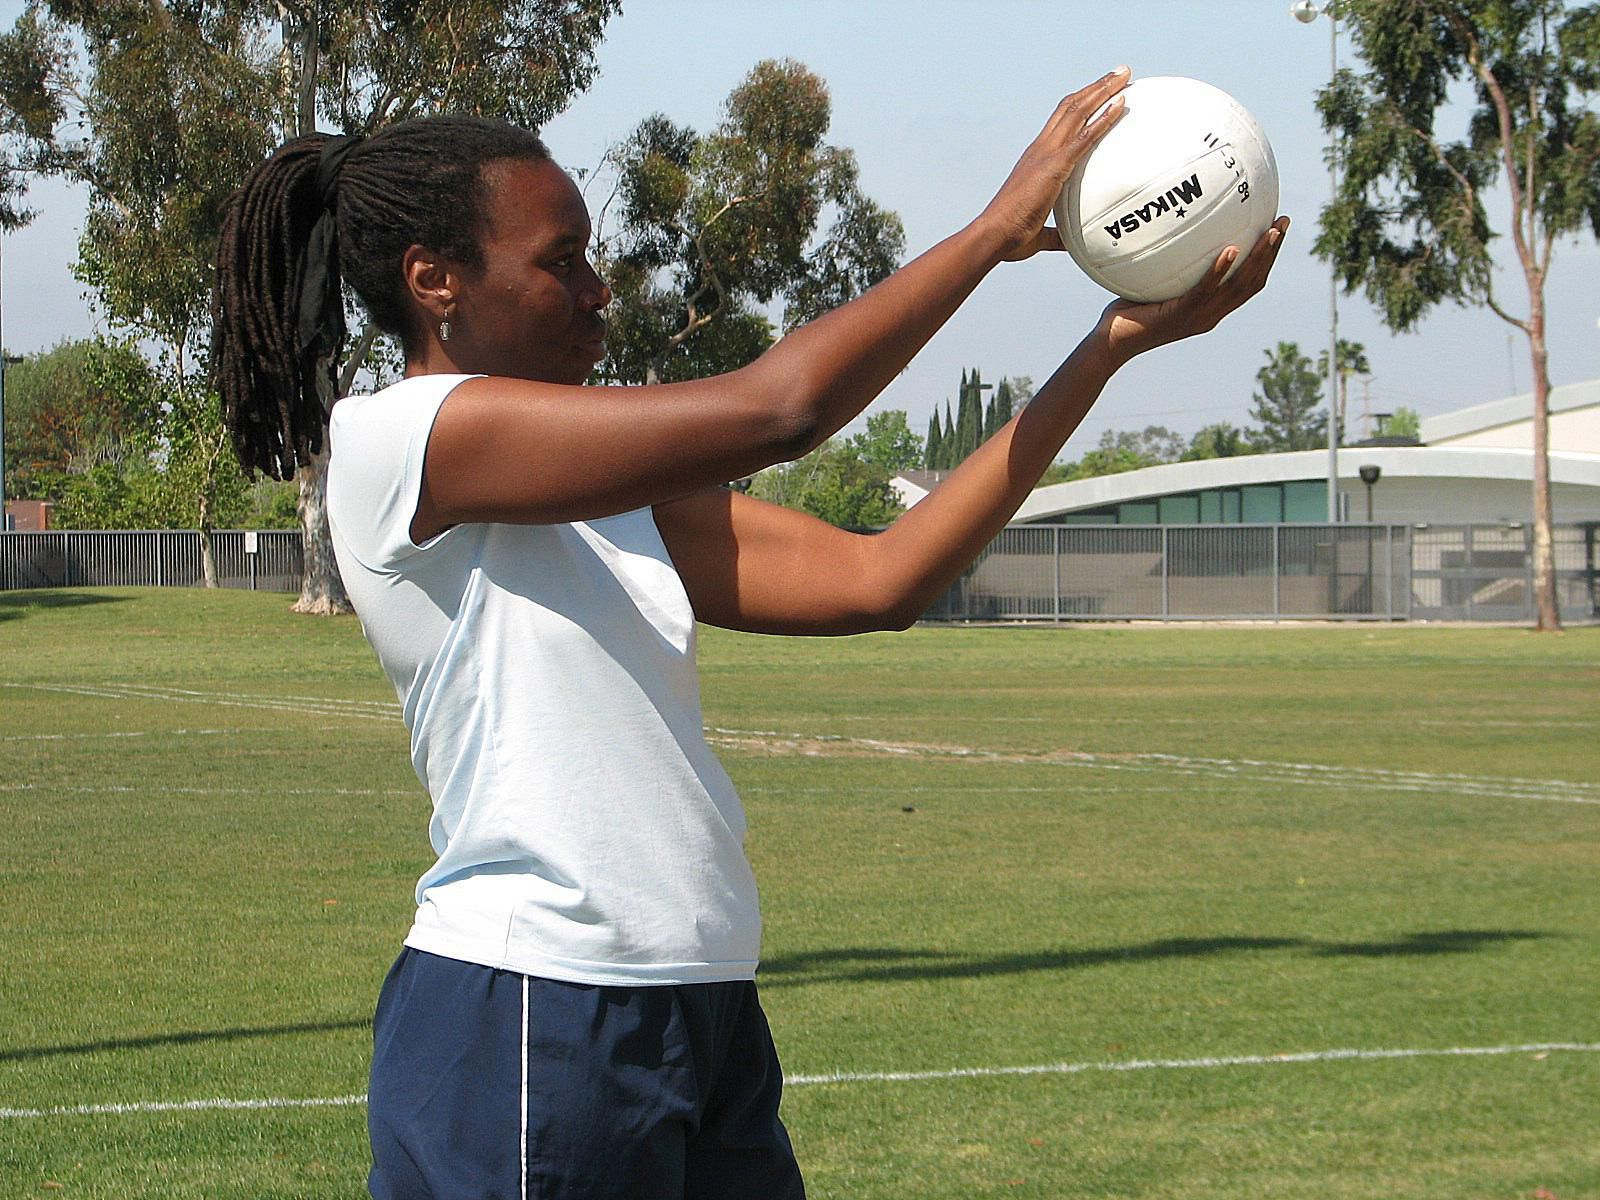 Learn The Overhand Serve In Volleyball Volleyball Serve Volleyball Skills Volleyball Workouts